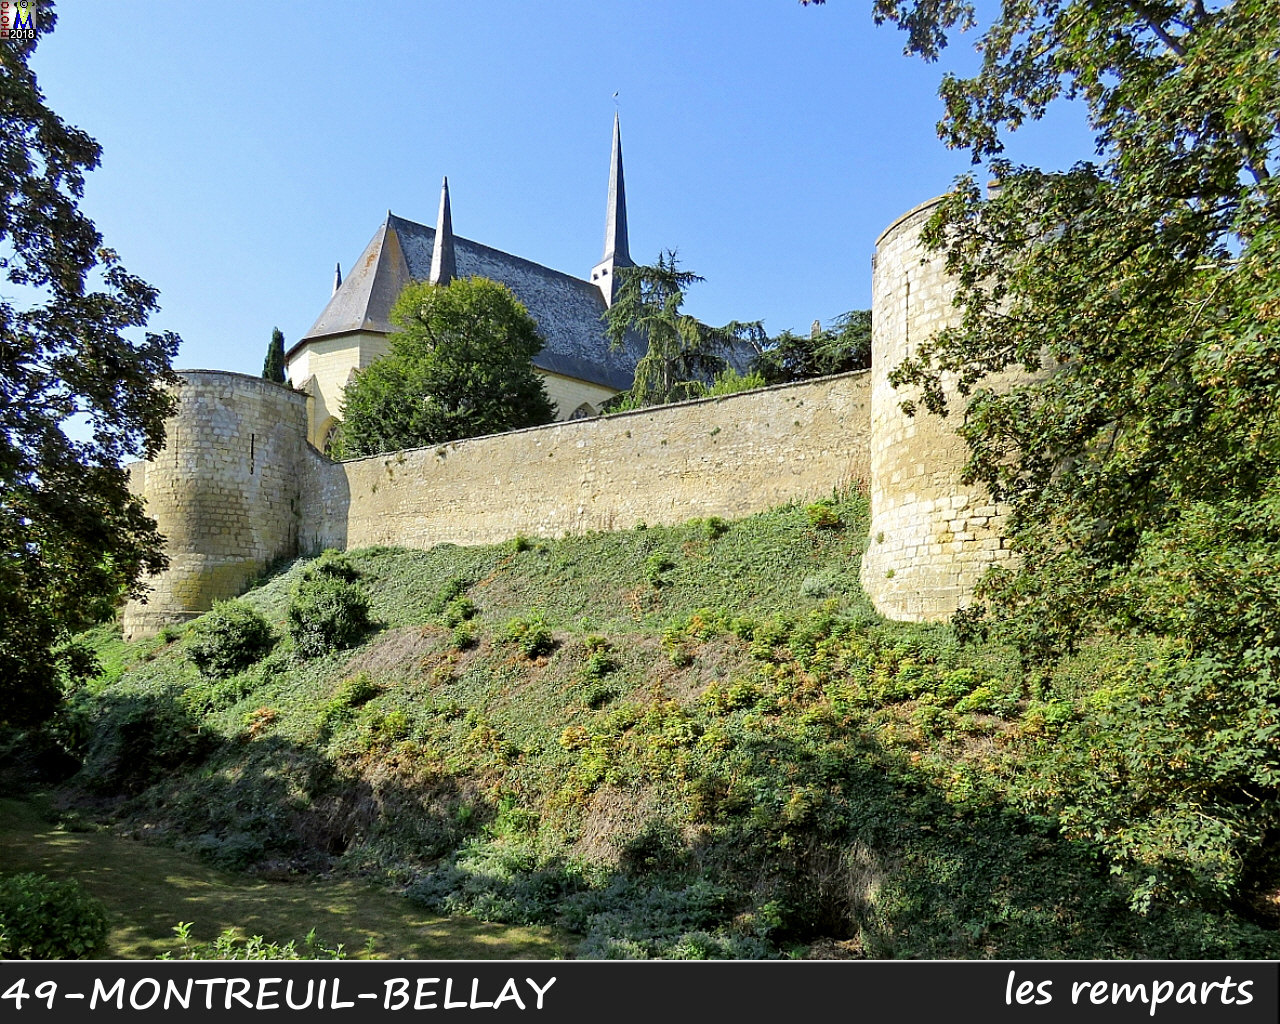 49MONTREUIL-BELLAY_remparts_1032.jpg